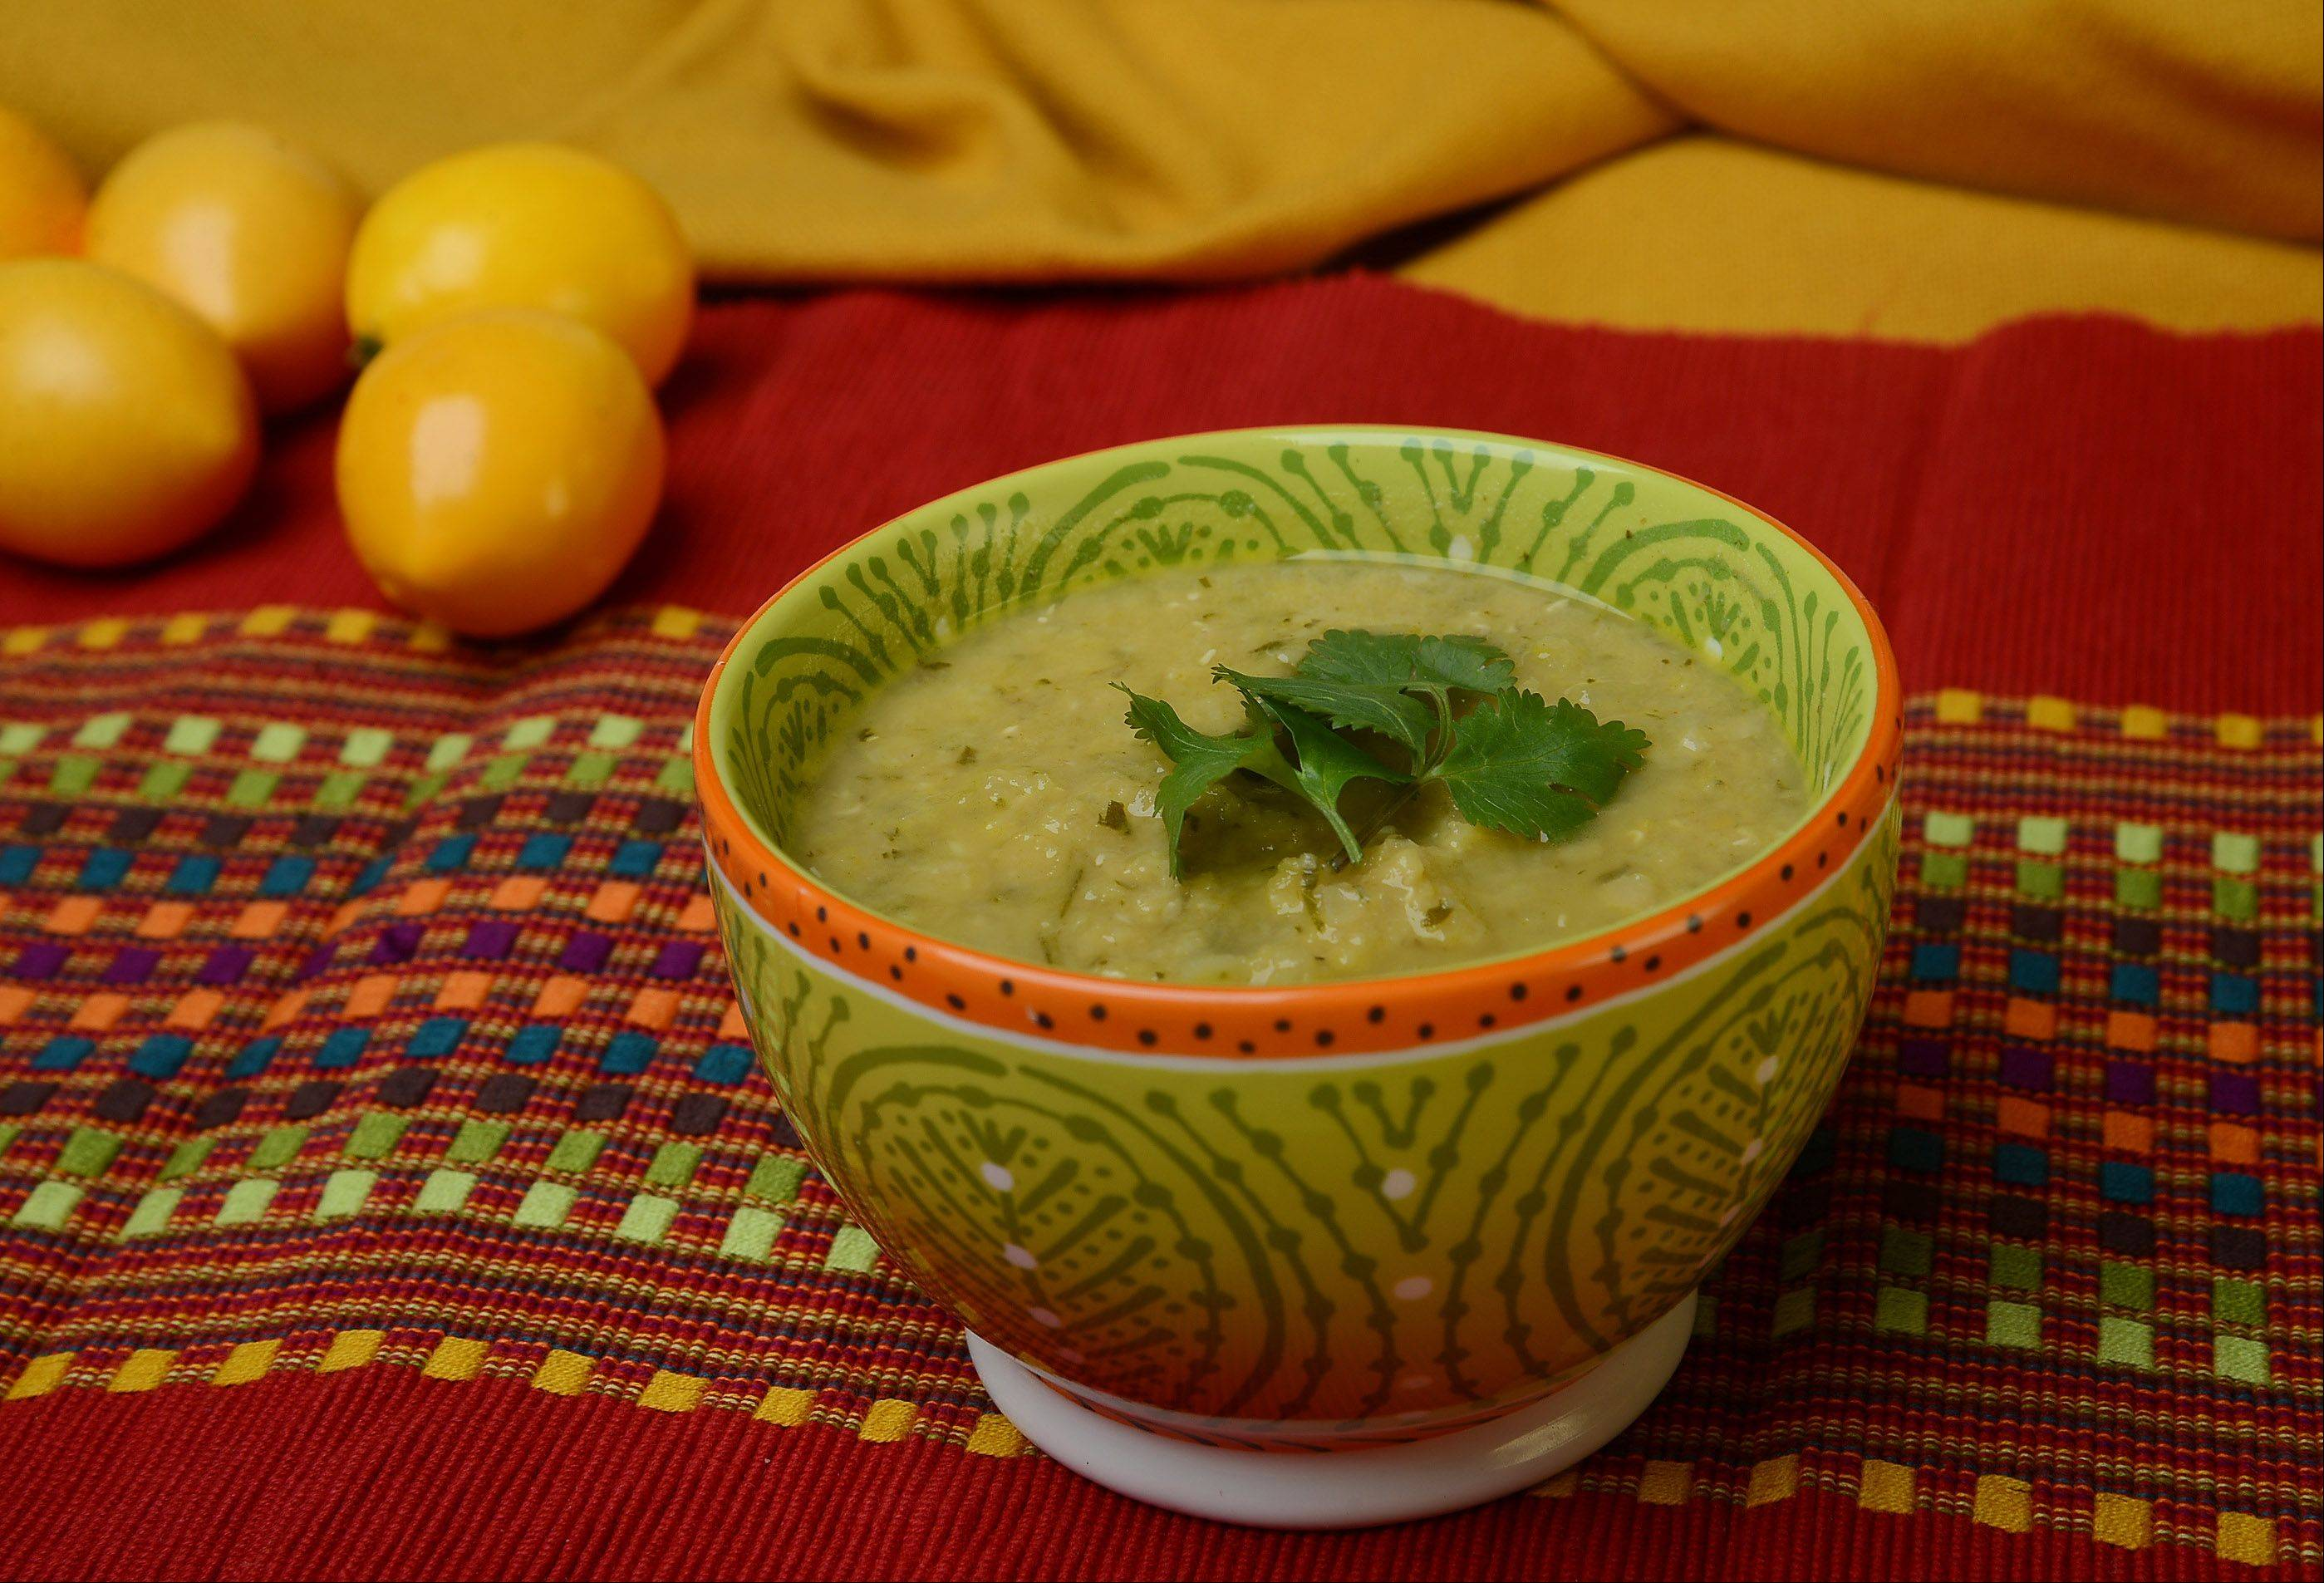 Red Lentil Soup with Cilantro Pesto and Lemon